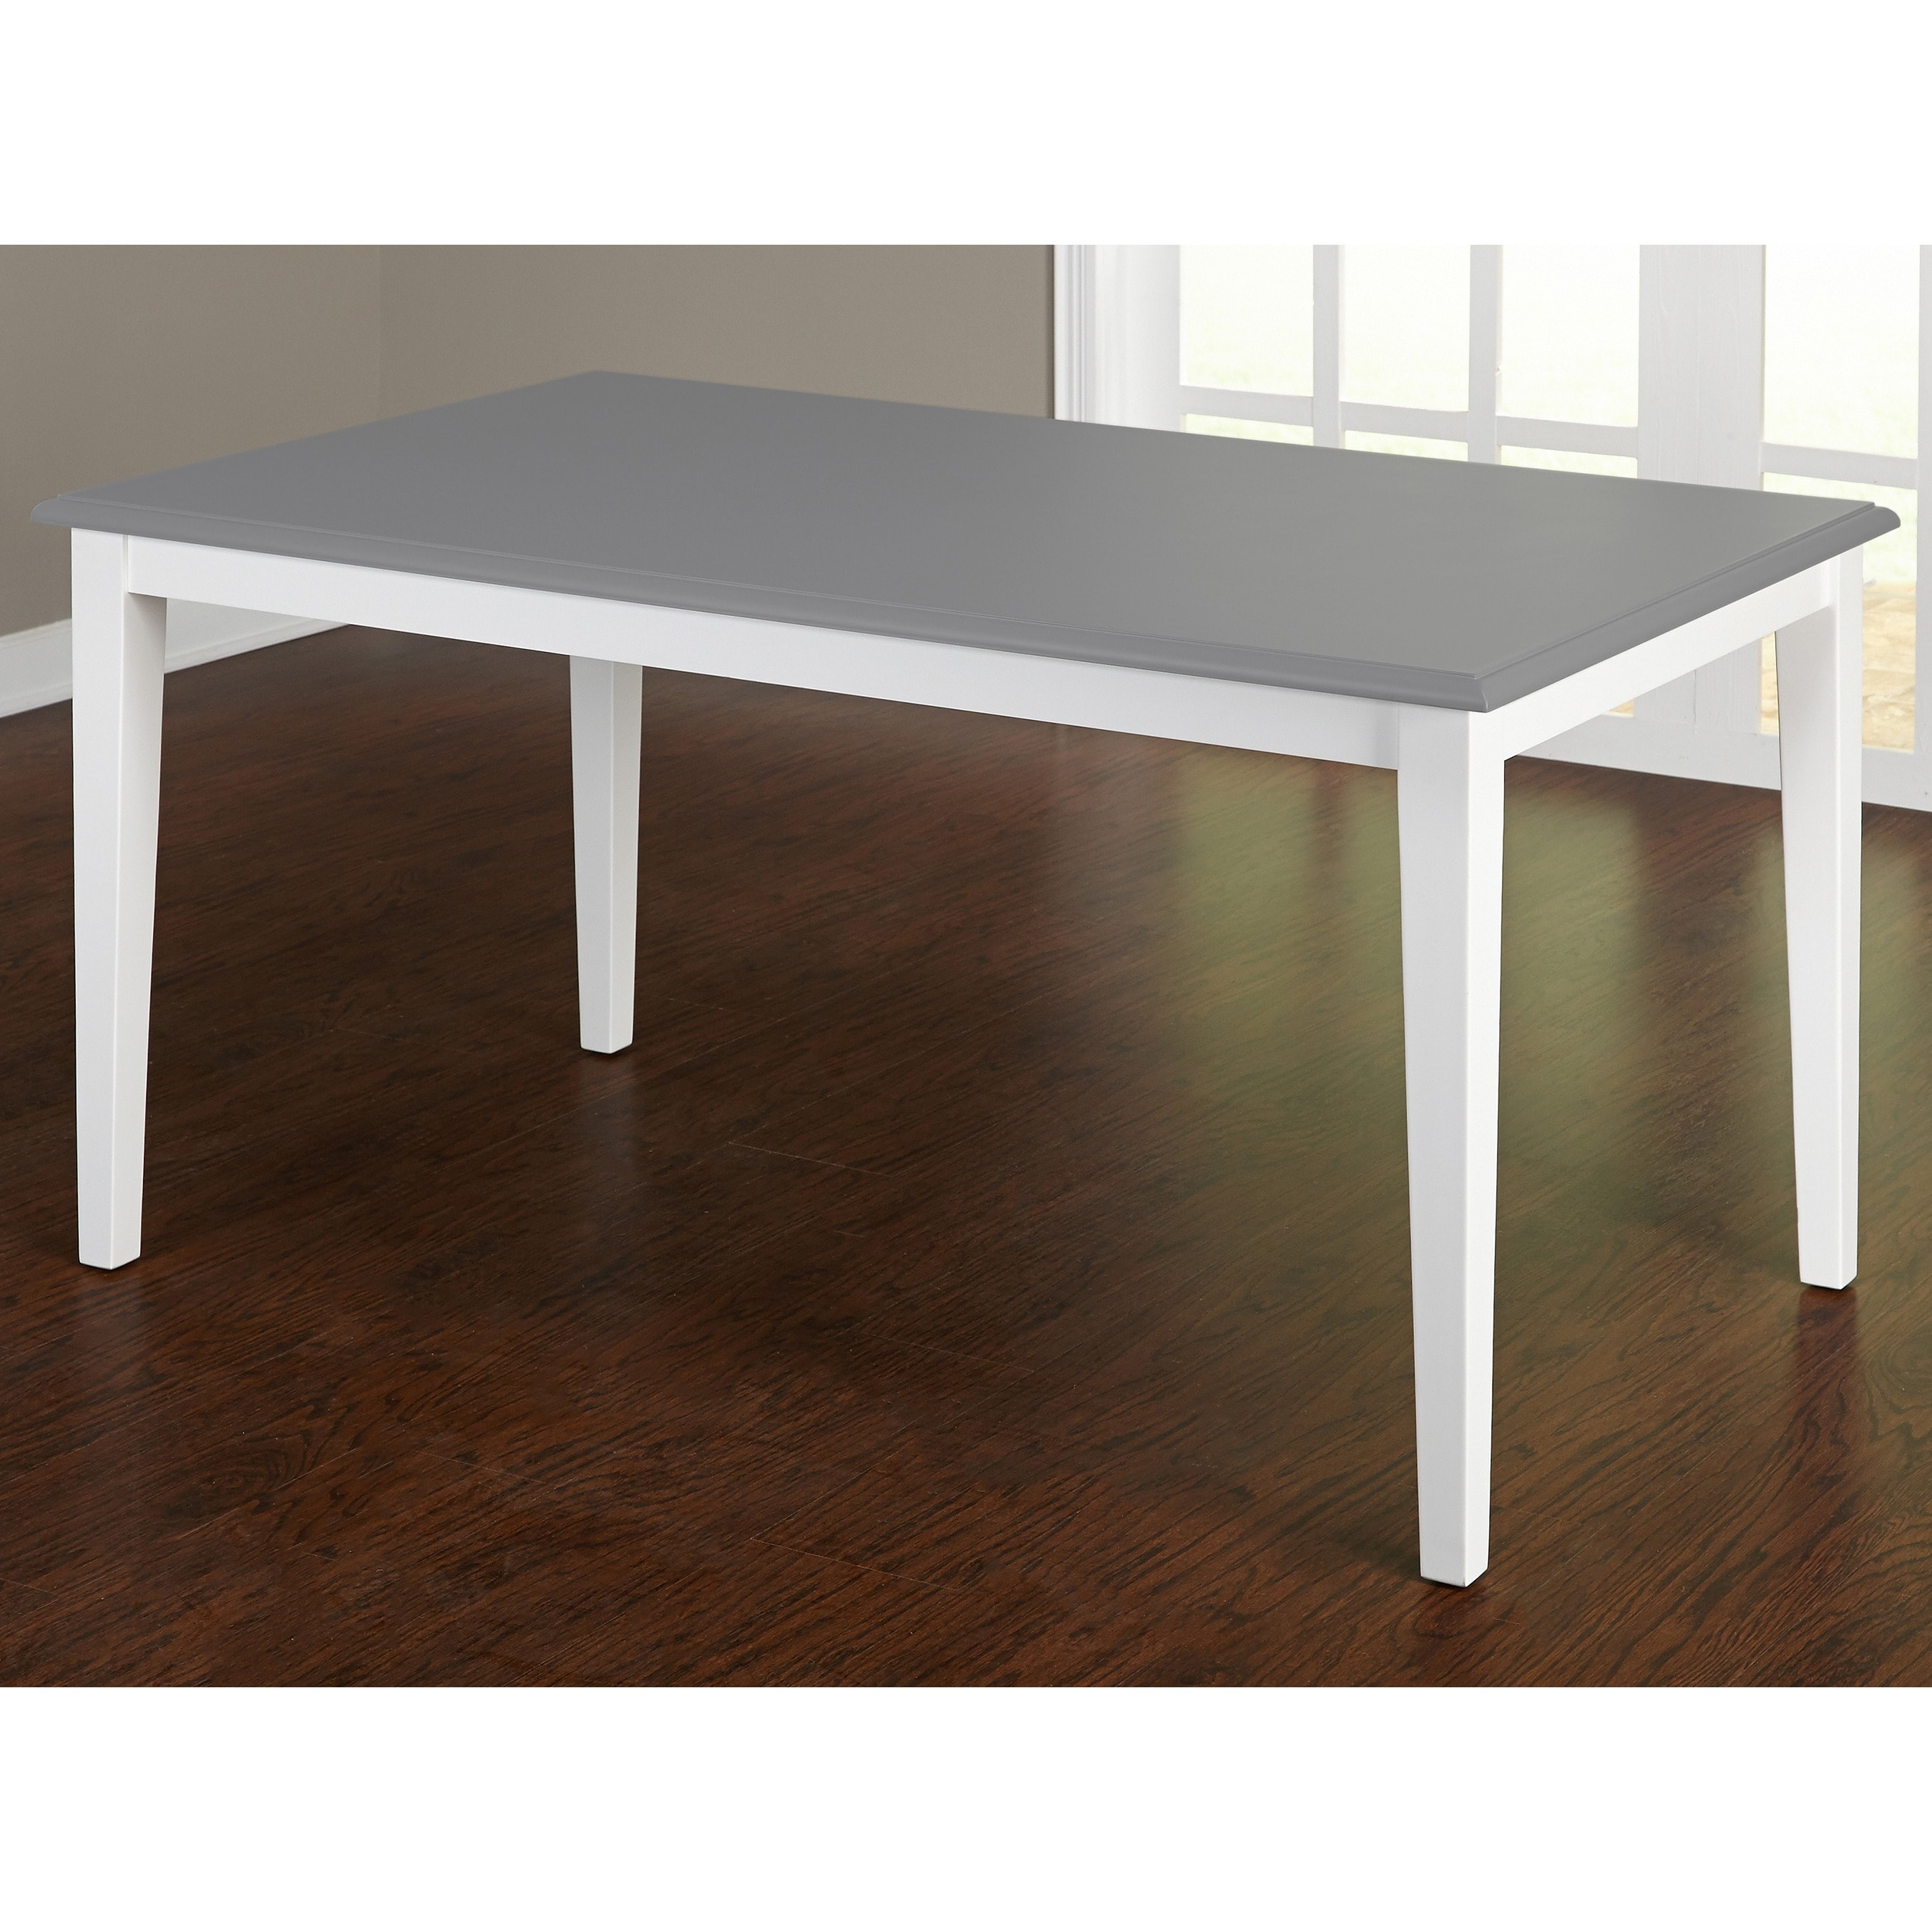 Target Marketing Systems Helena Dining Table